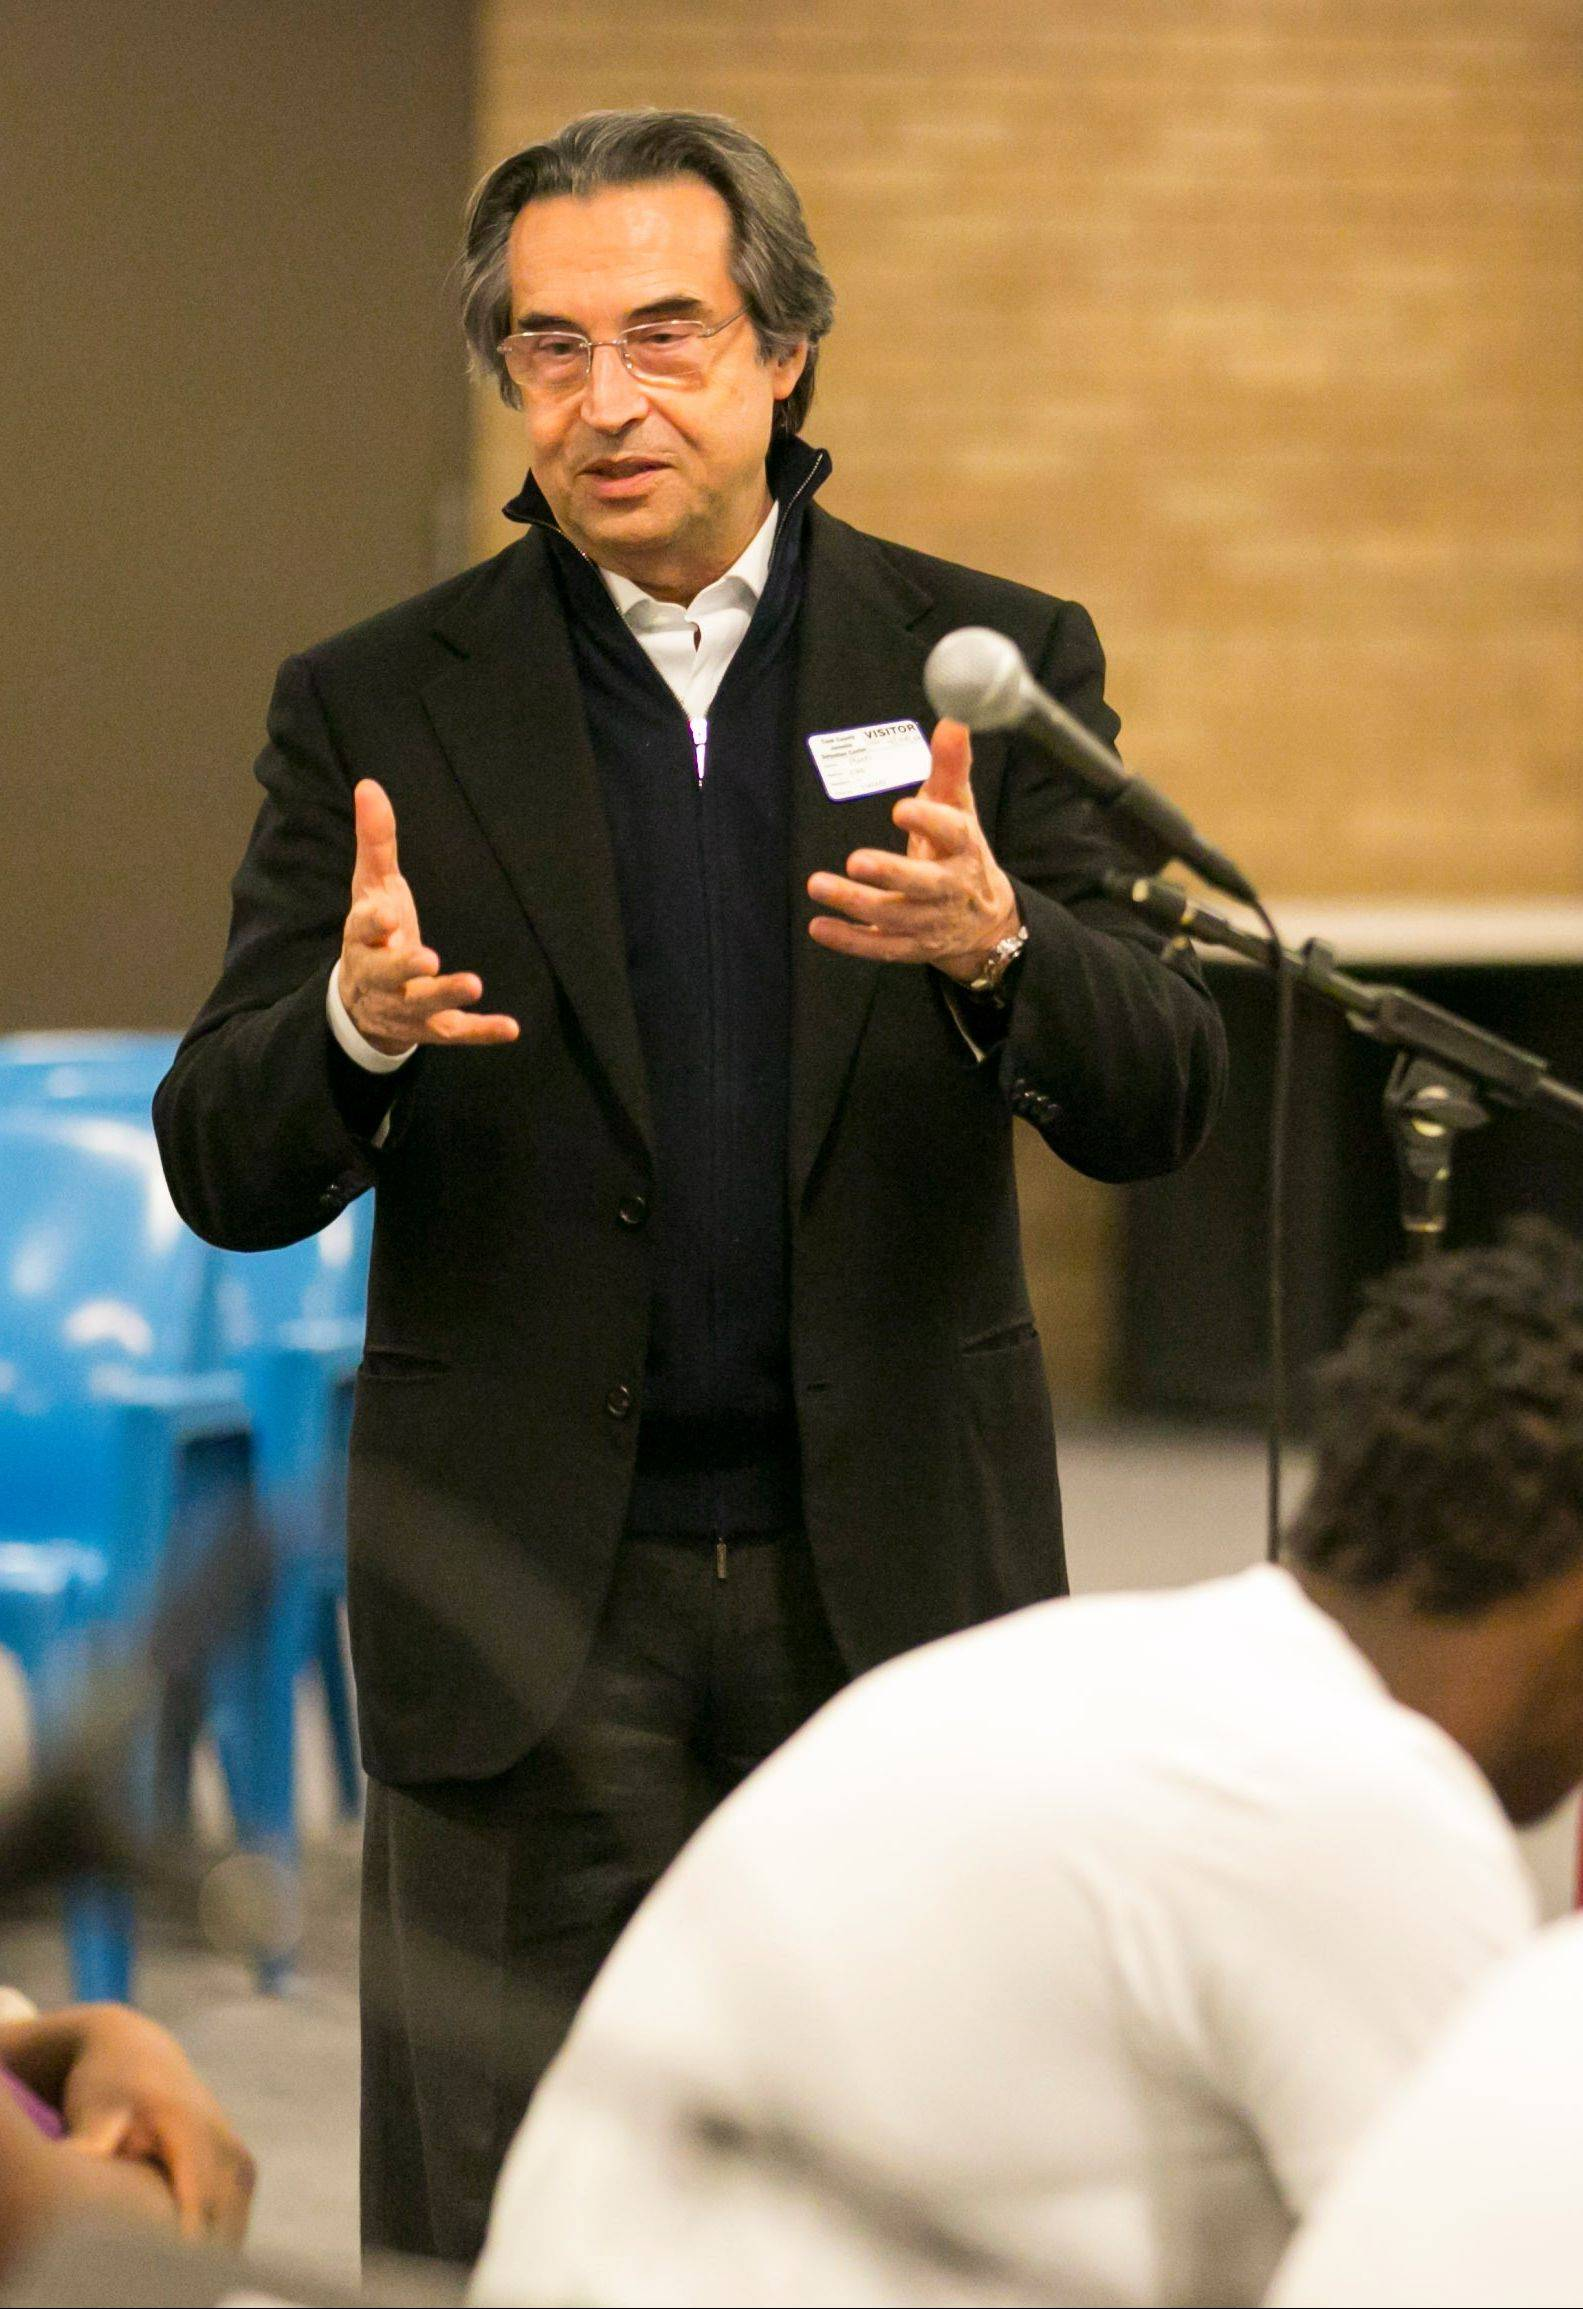 Chicago Symphony Orchestra Music Director Riccardo Muti talks to Cook County Juvenile Detention Center inmates following their music performance as part of the CSO's Citizen Musician program Sunday.